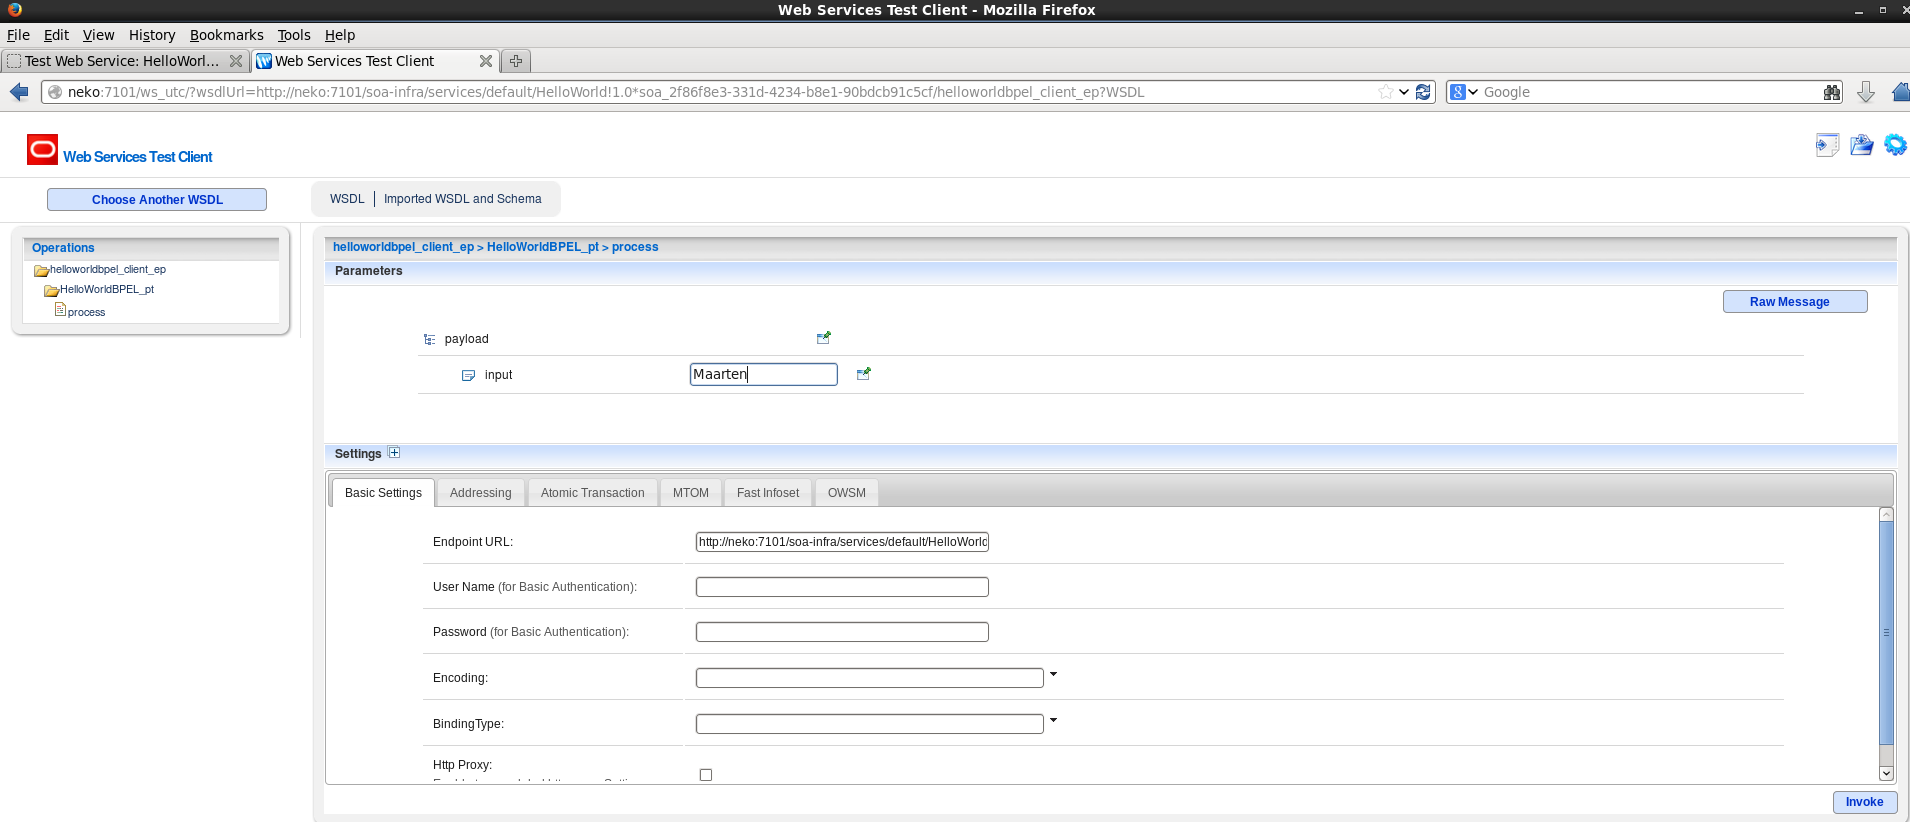 The webservice test client can be opened on development mode servers by  accessing an endpoint in